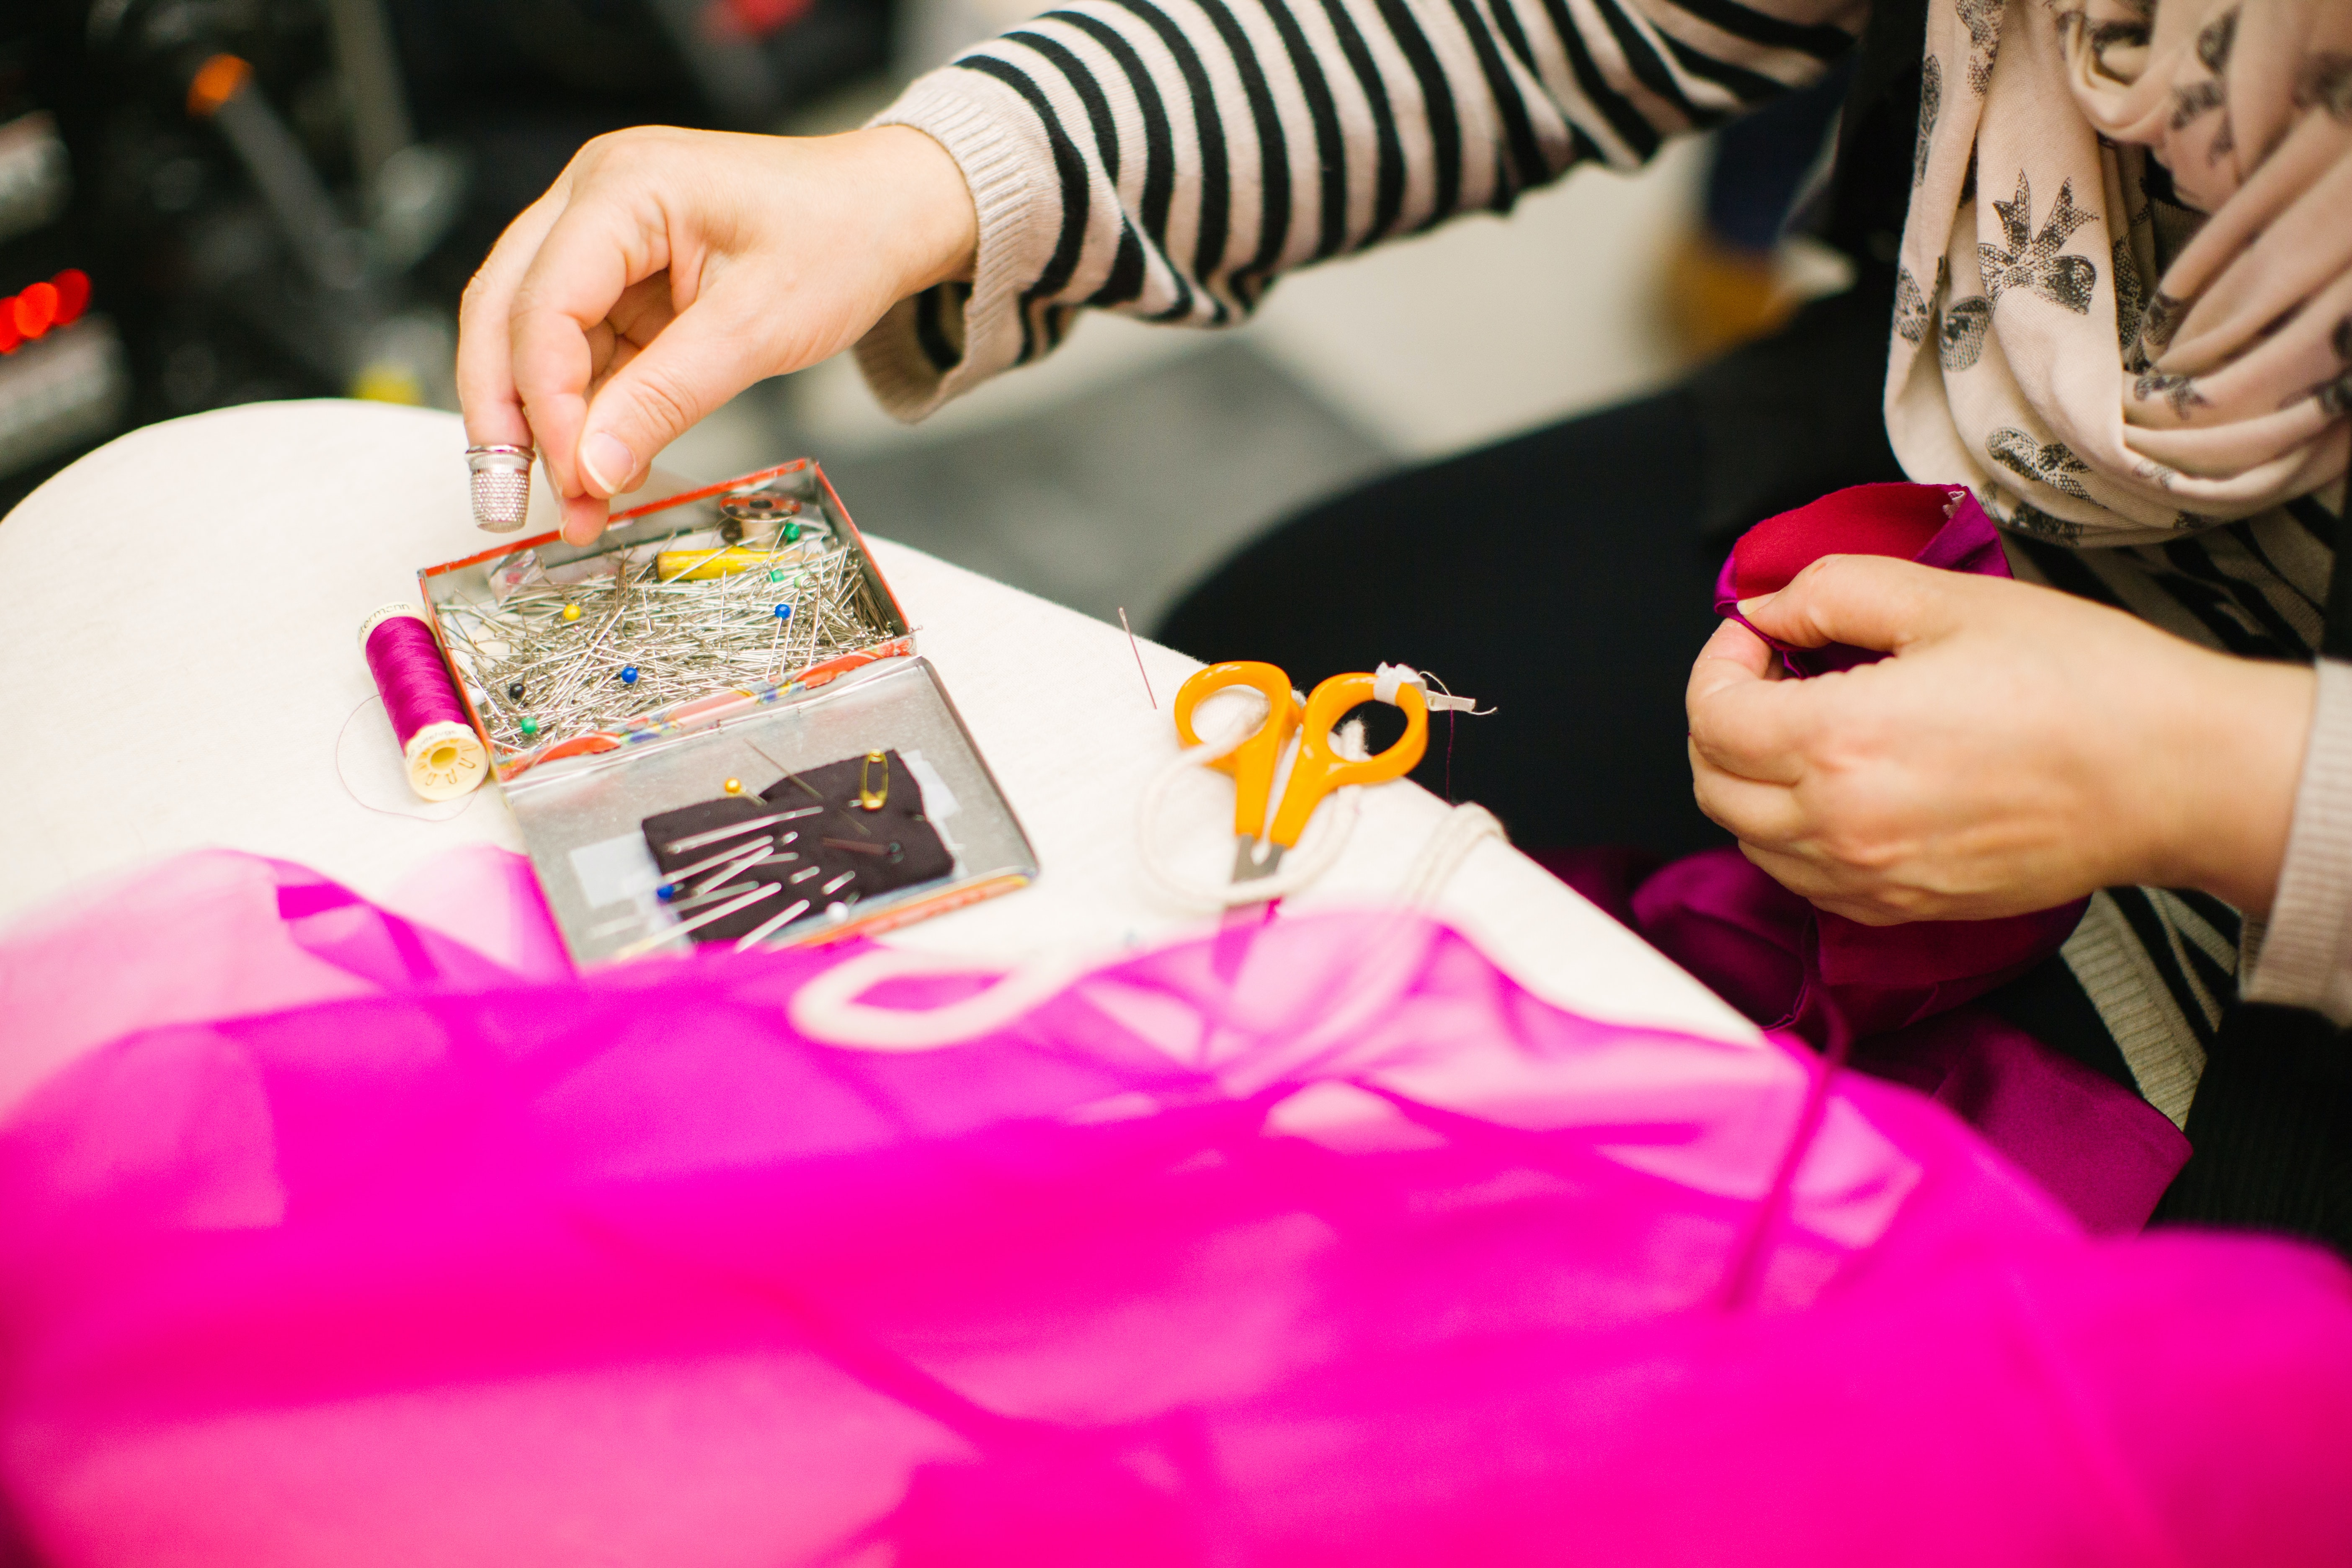 A person reaching for a needle while sewing pink fabric